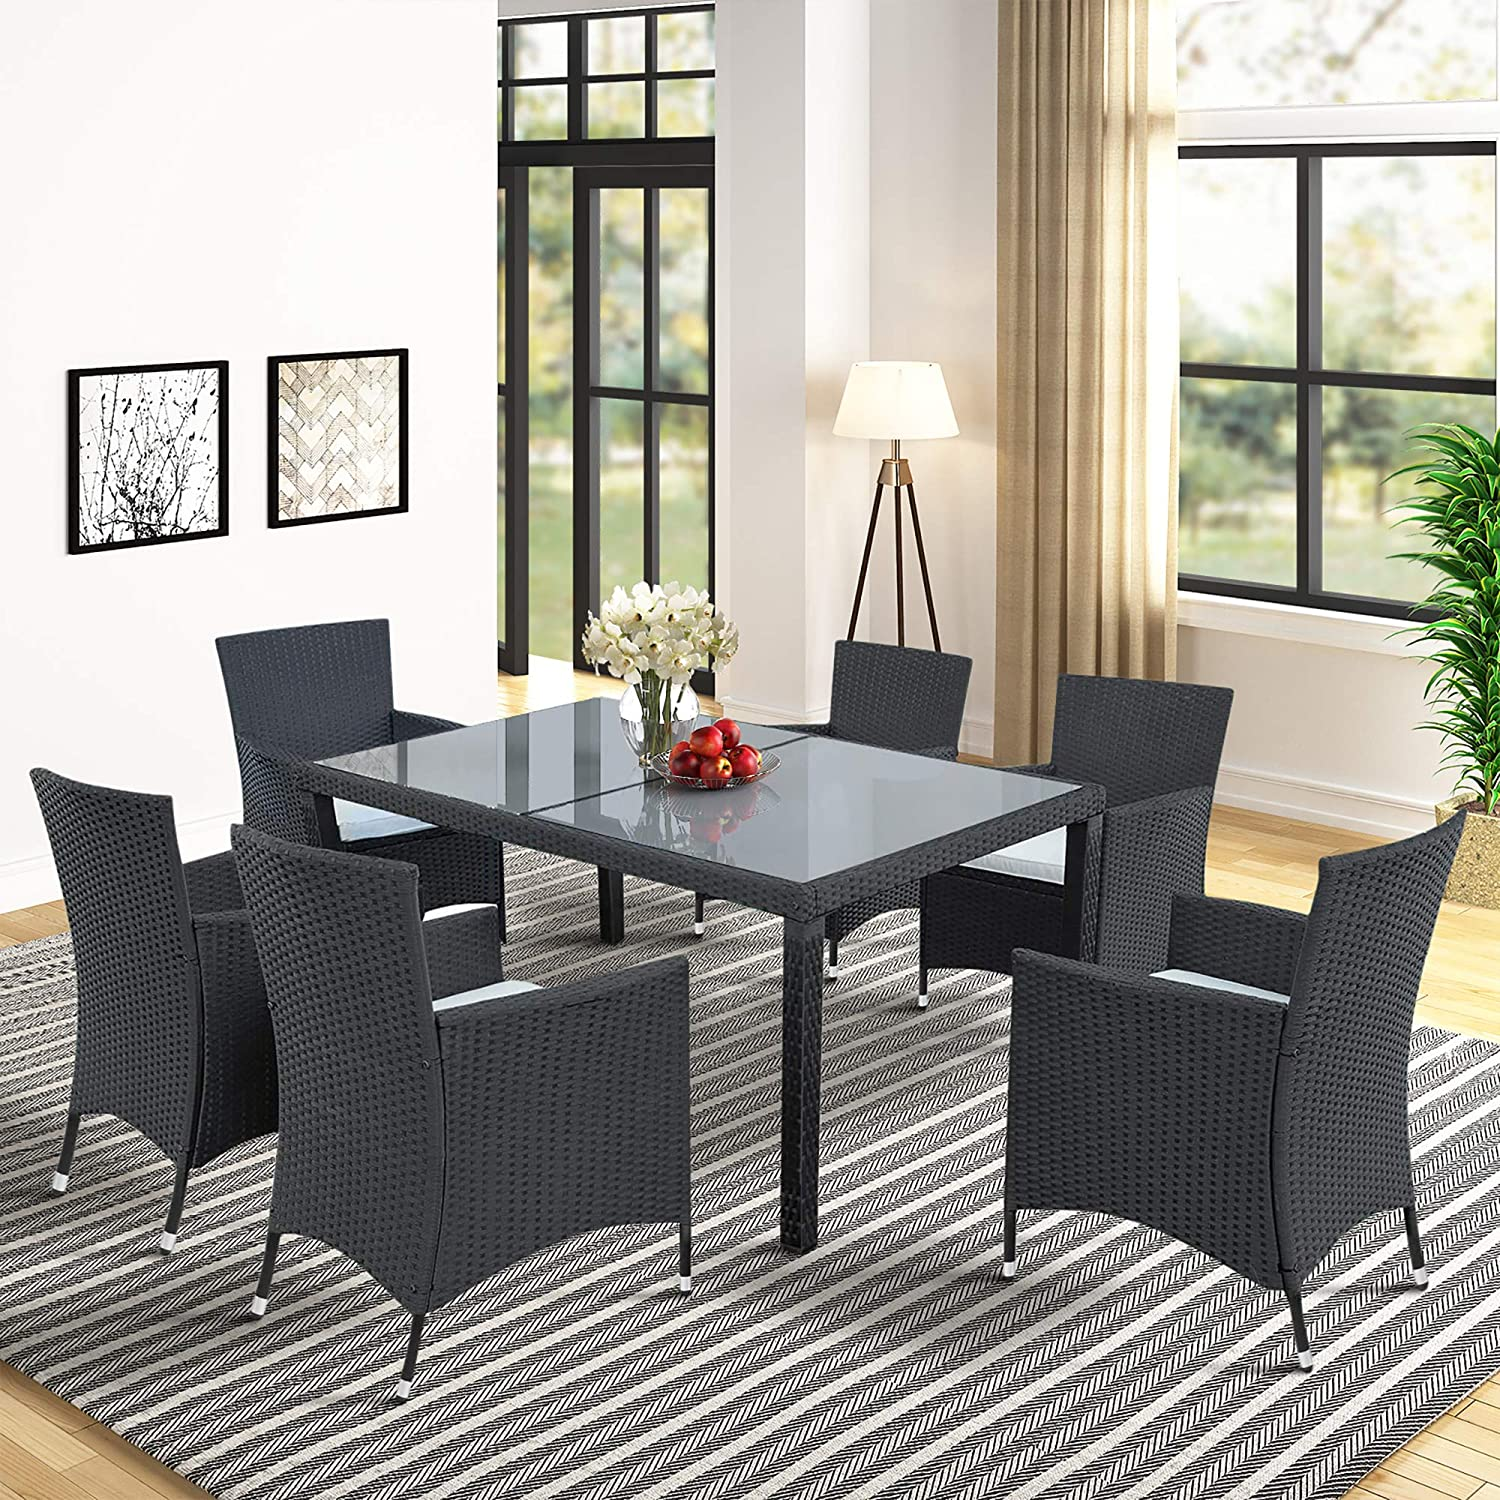 Harper Bright Designs 7 Piece Patio Furniture Dining Set Outdoor Garden Wicker Rattan Dining Table Chairs Conversation Set with Cushions Black